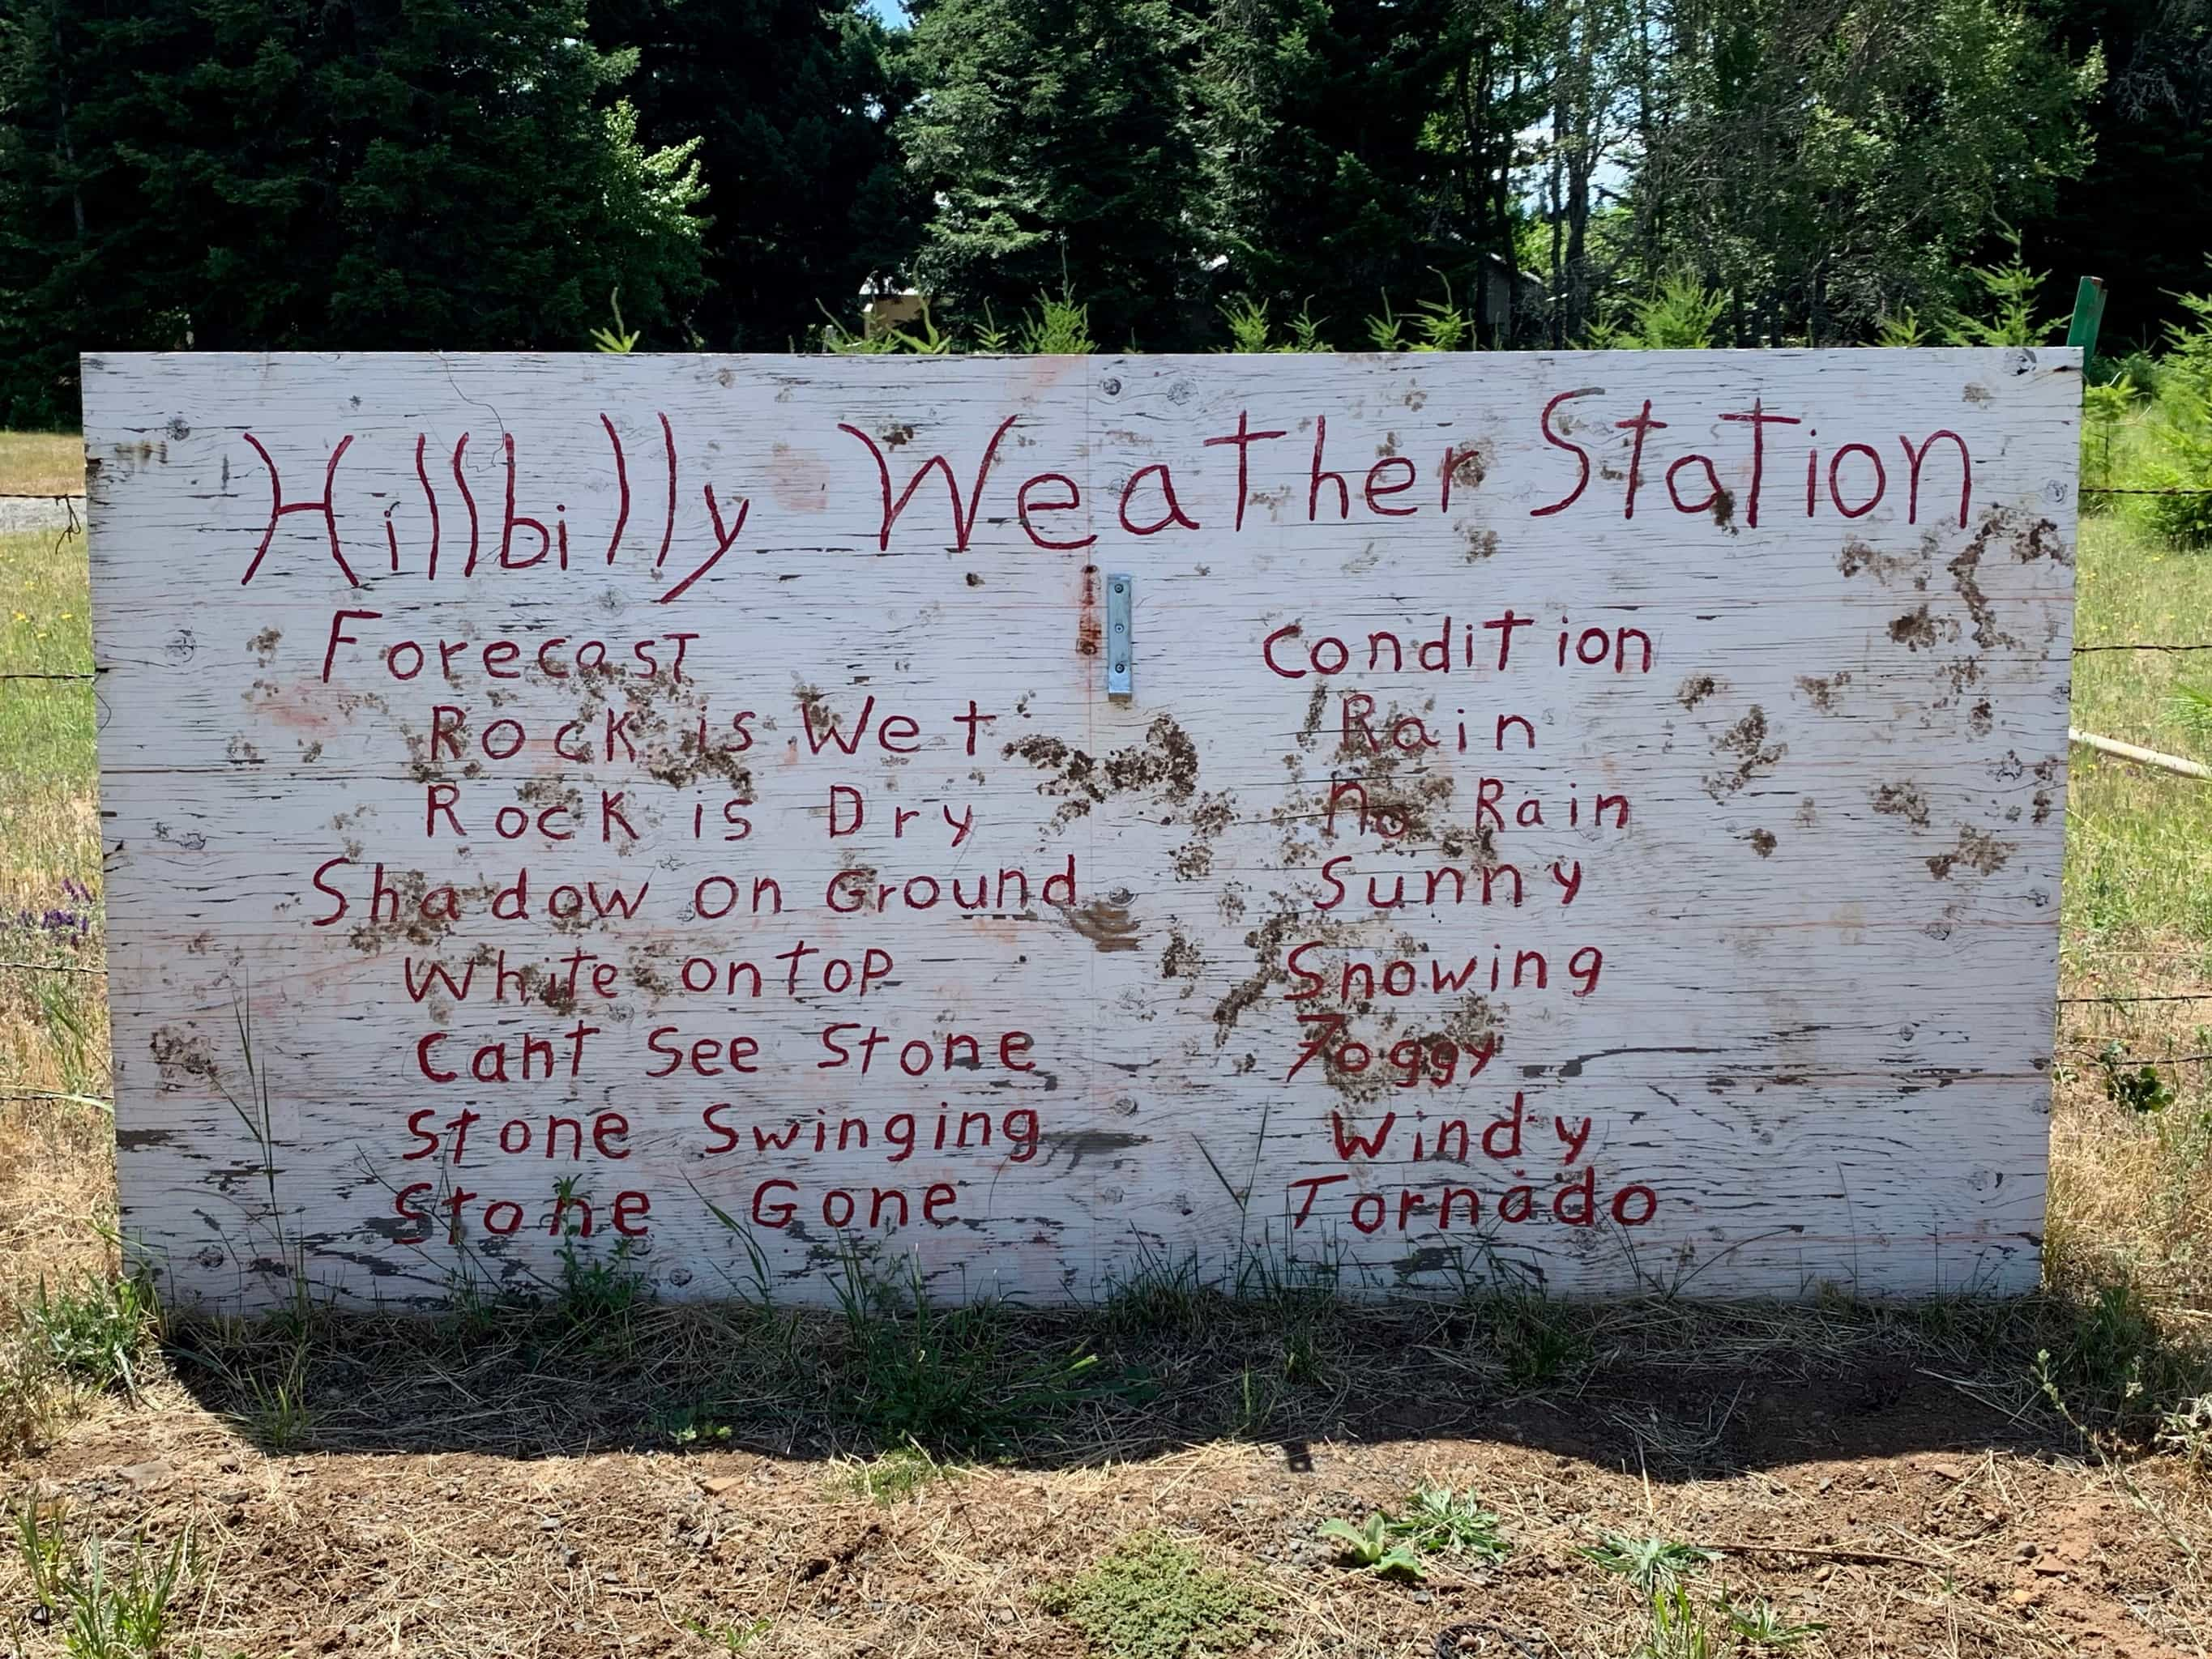 Hillbilly weather station with condition / forecast.